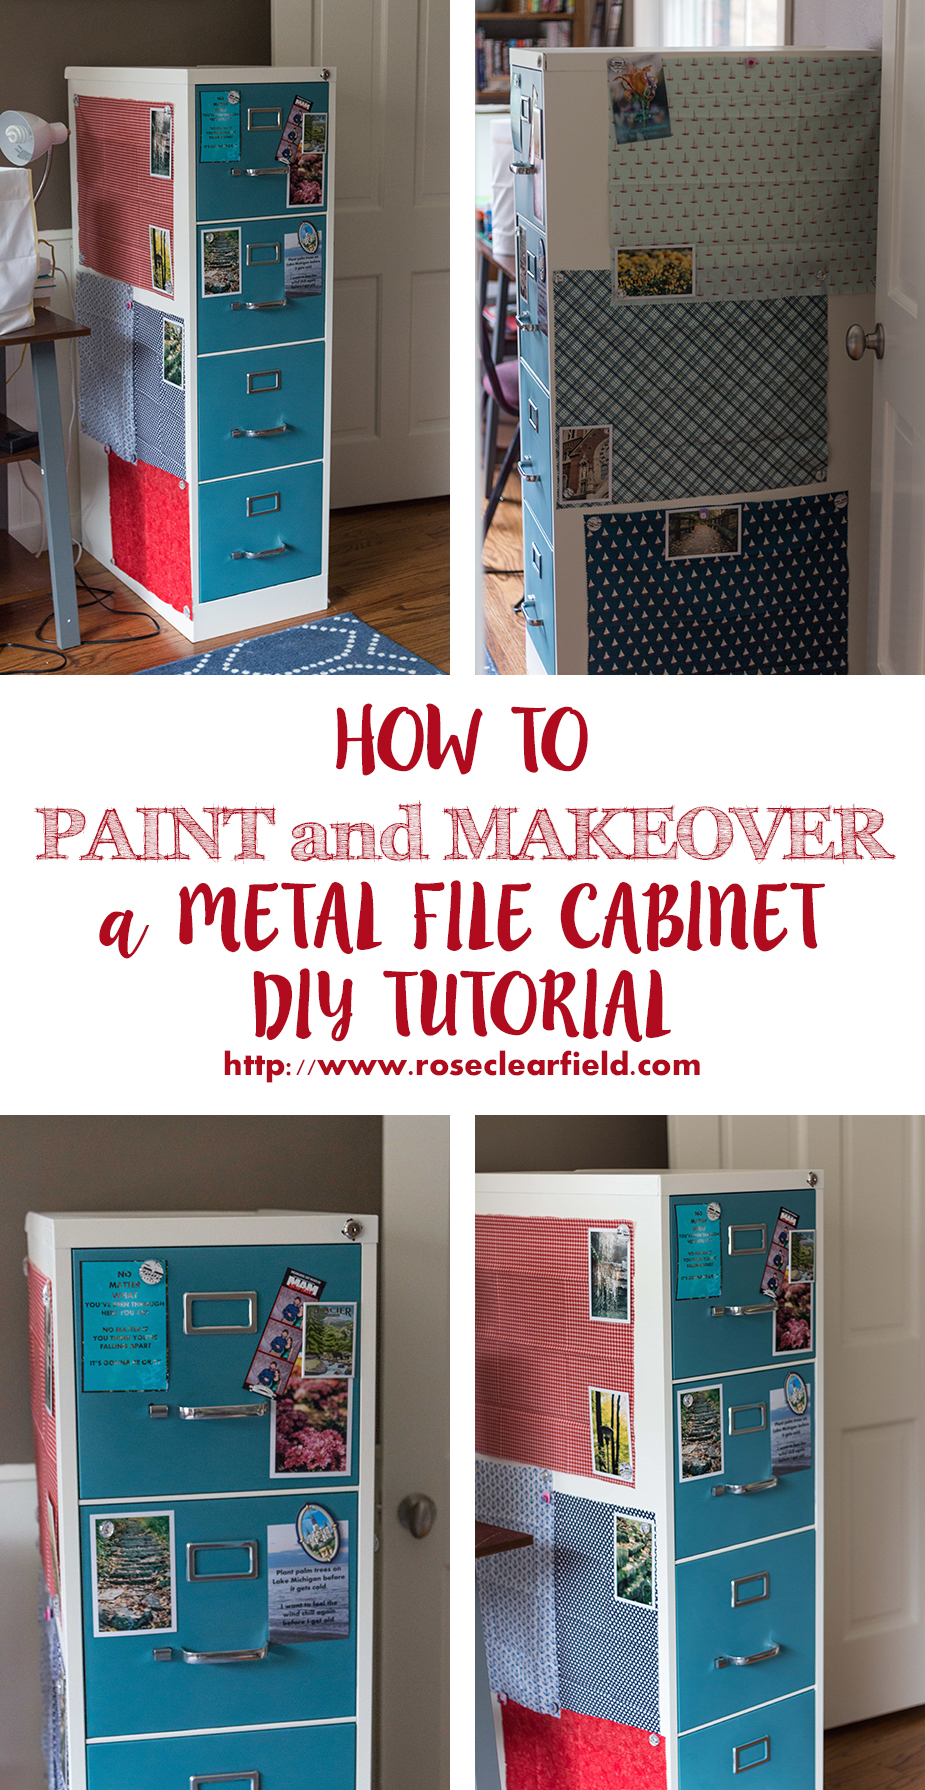 How to Paint and Makeover a Metal File Cabinet. A DIY tutorial from Rose Clearfield. | https://www.roseclearfield.com